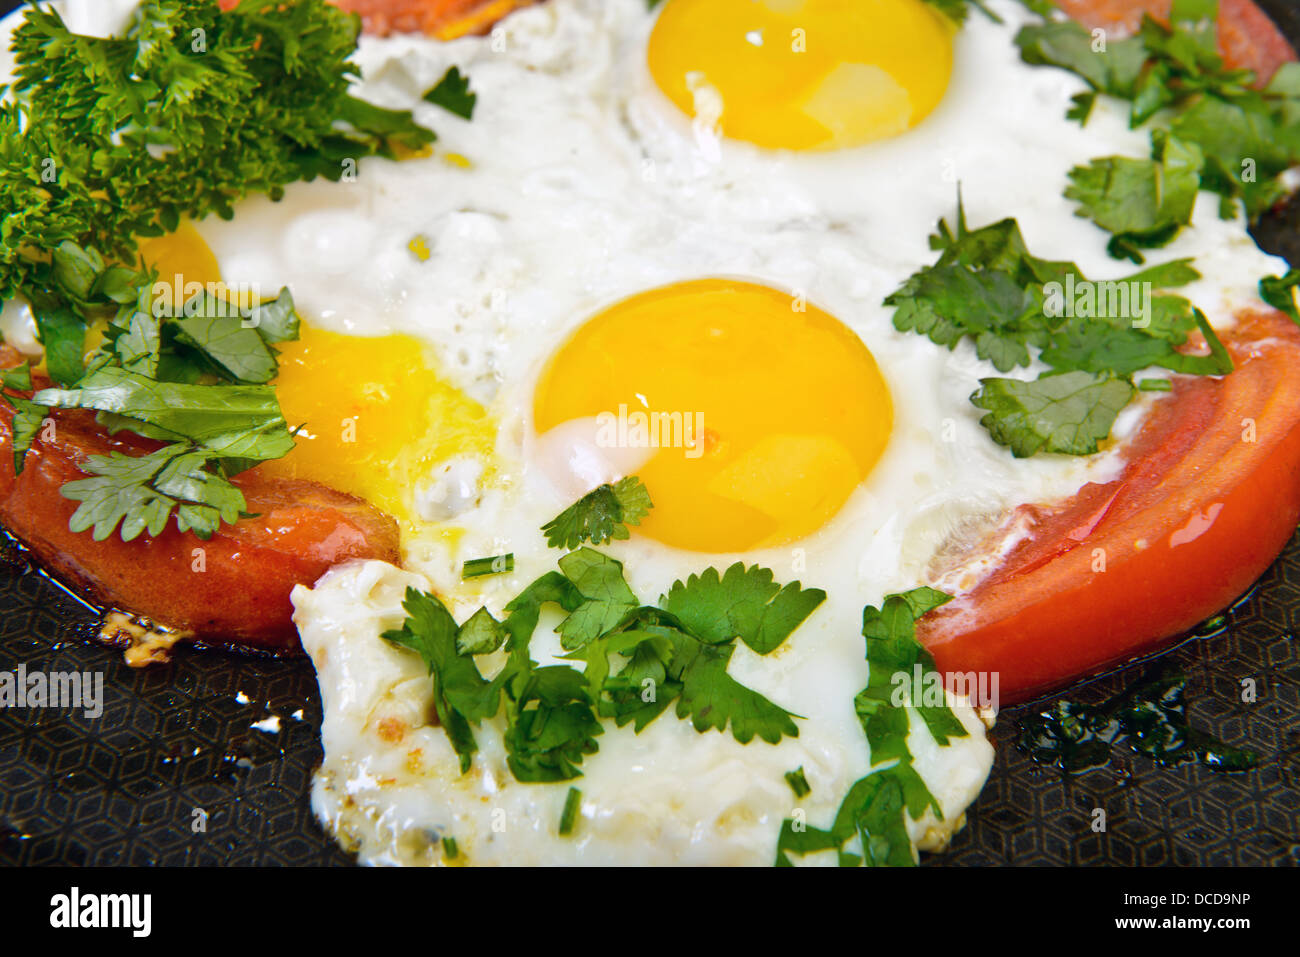 Fried Egg and tomato at pan with herbs - Stock Image